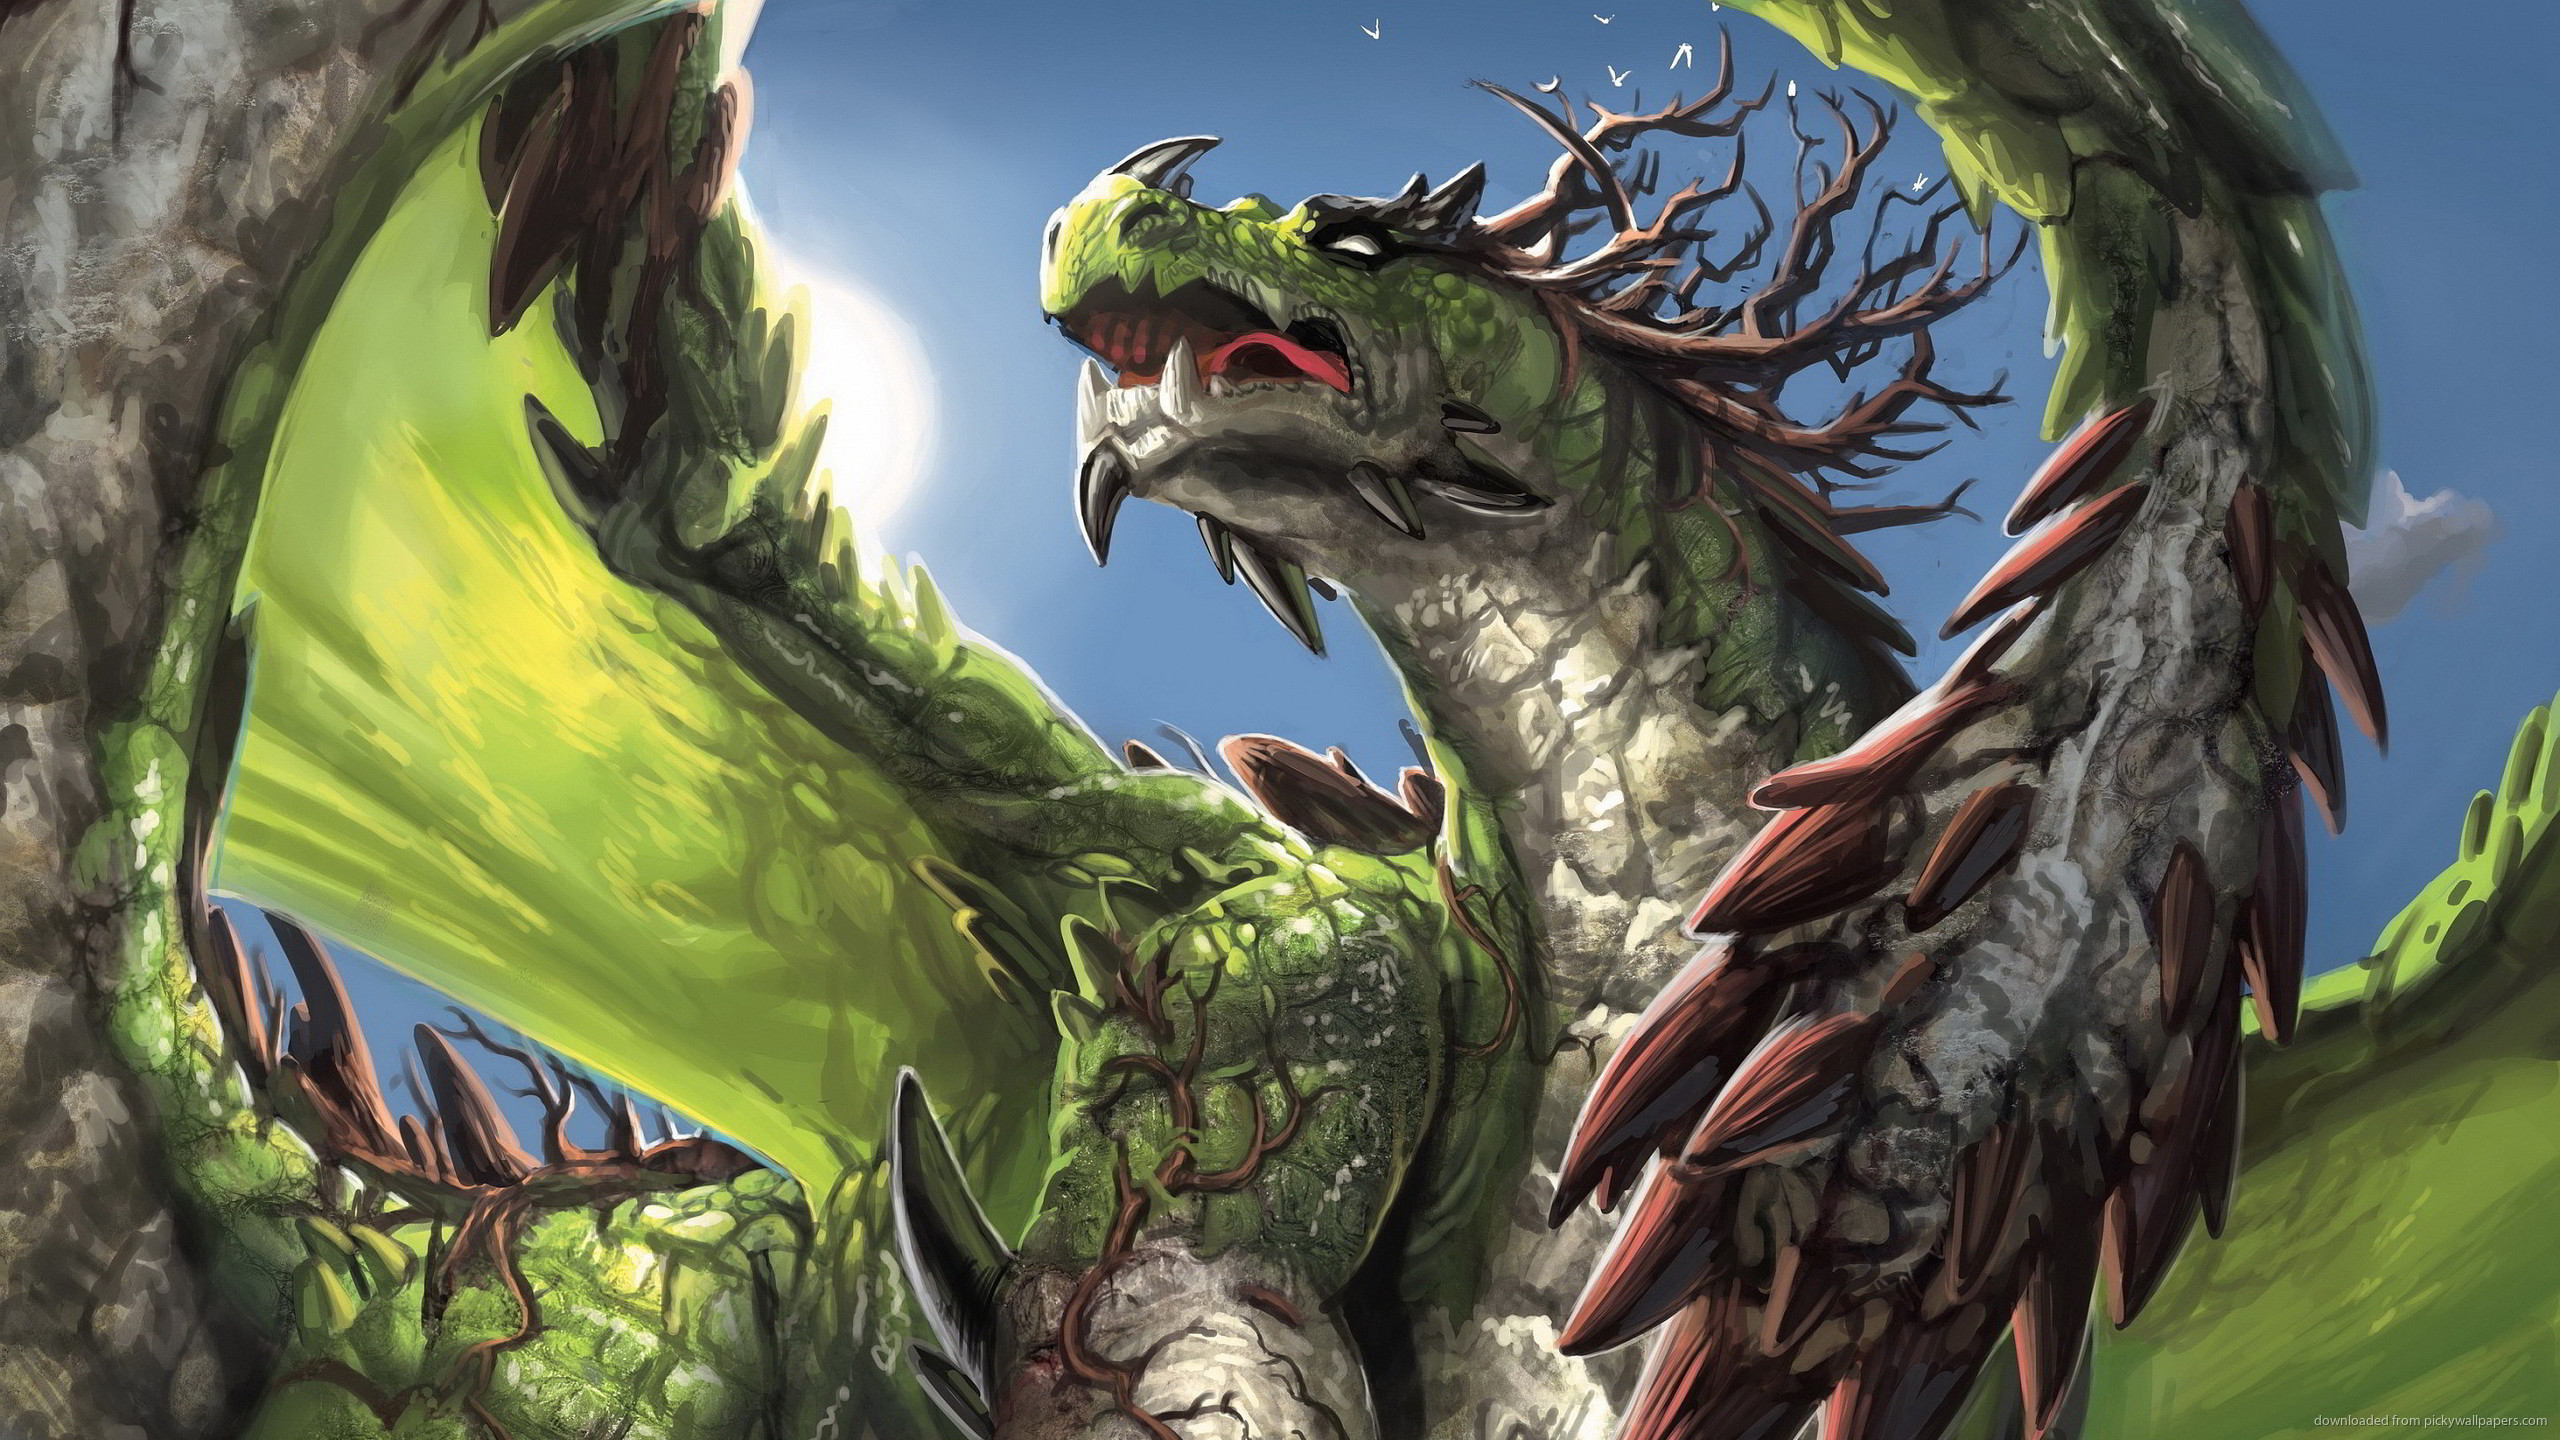 2560x1440 Green Dragon Fantasy Widescreen Wallpaper for